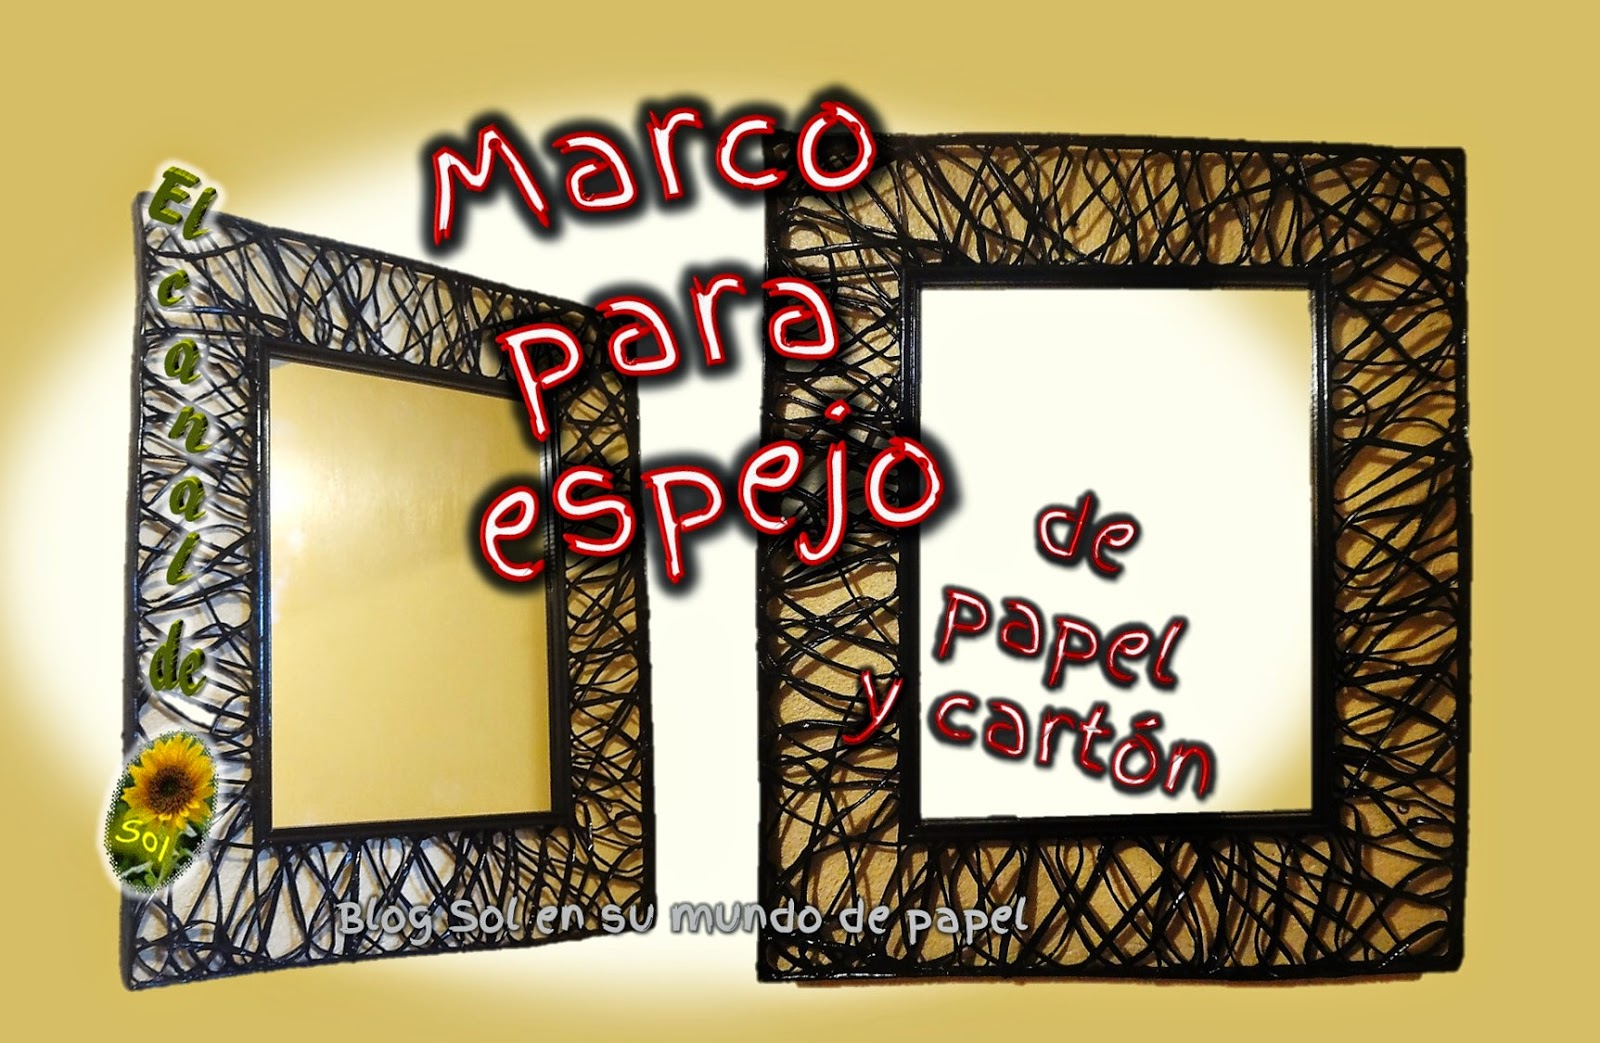 Marco para espejo de papel y cart n for Decorar espejos sin marco